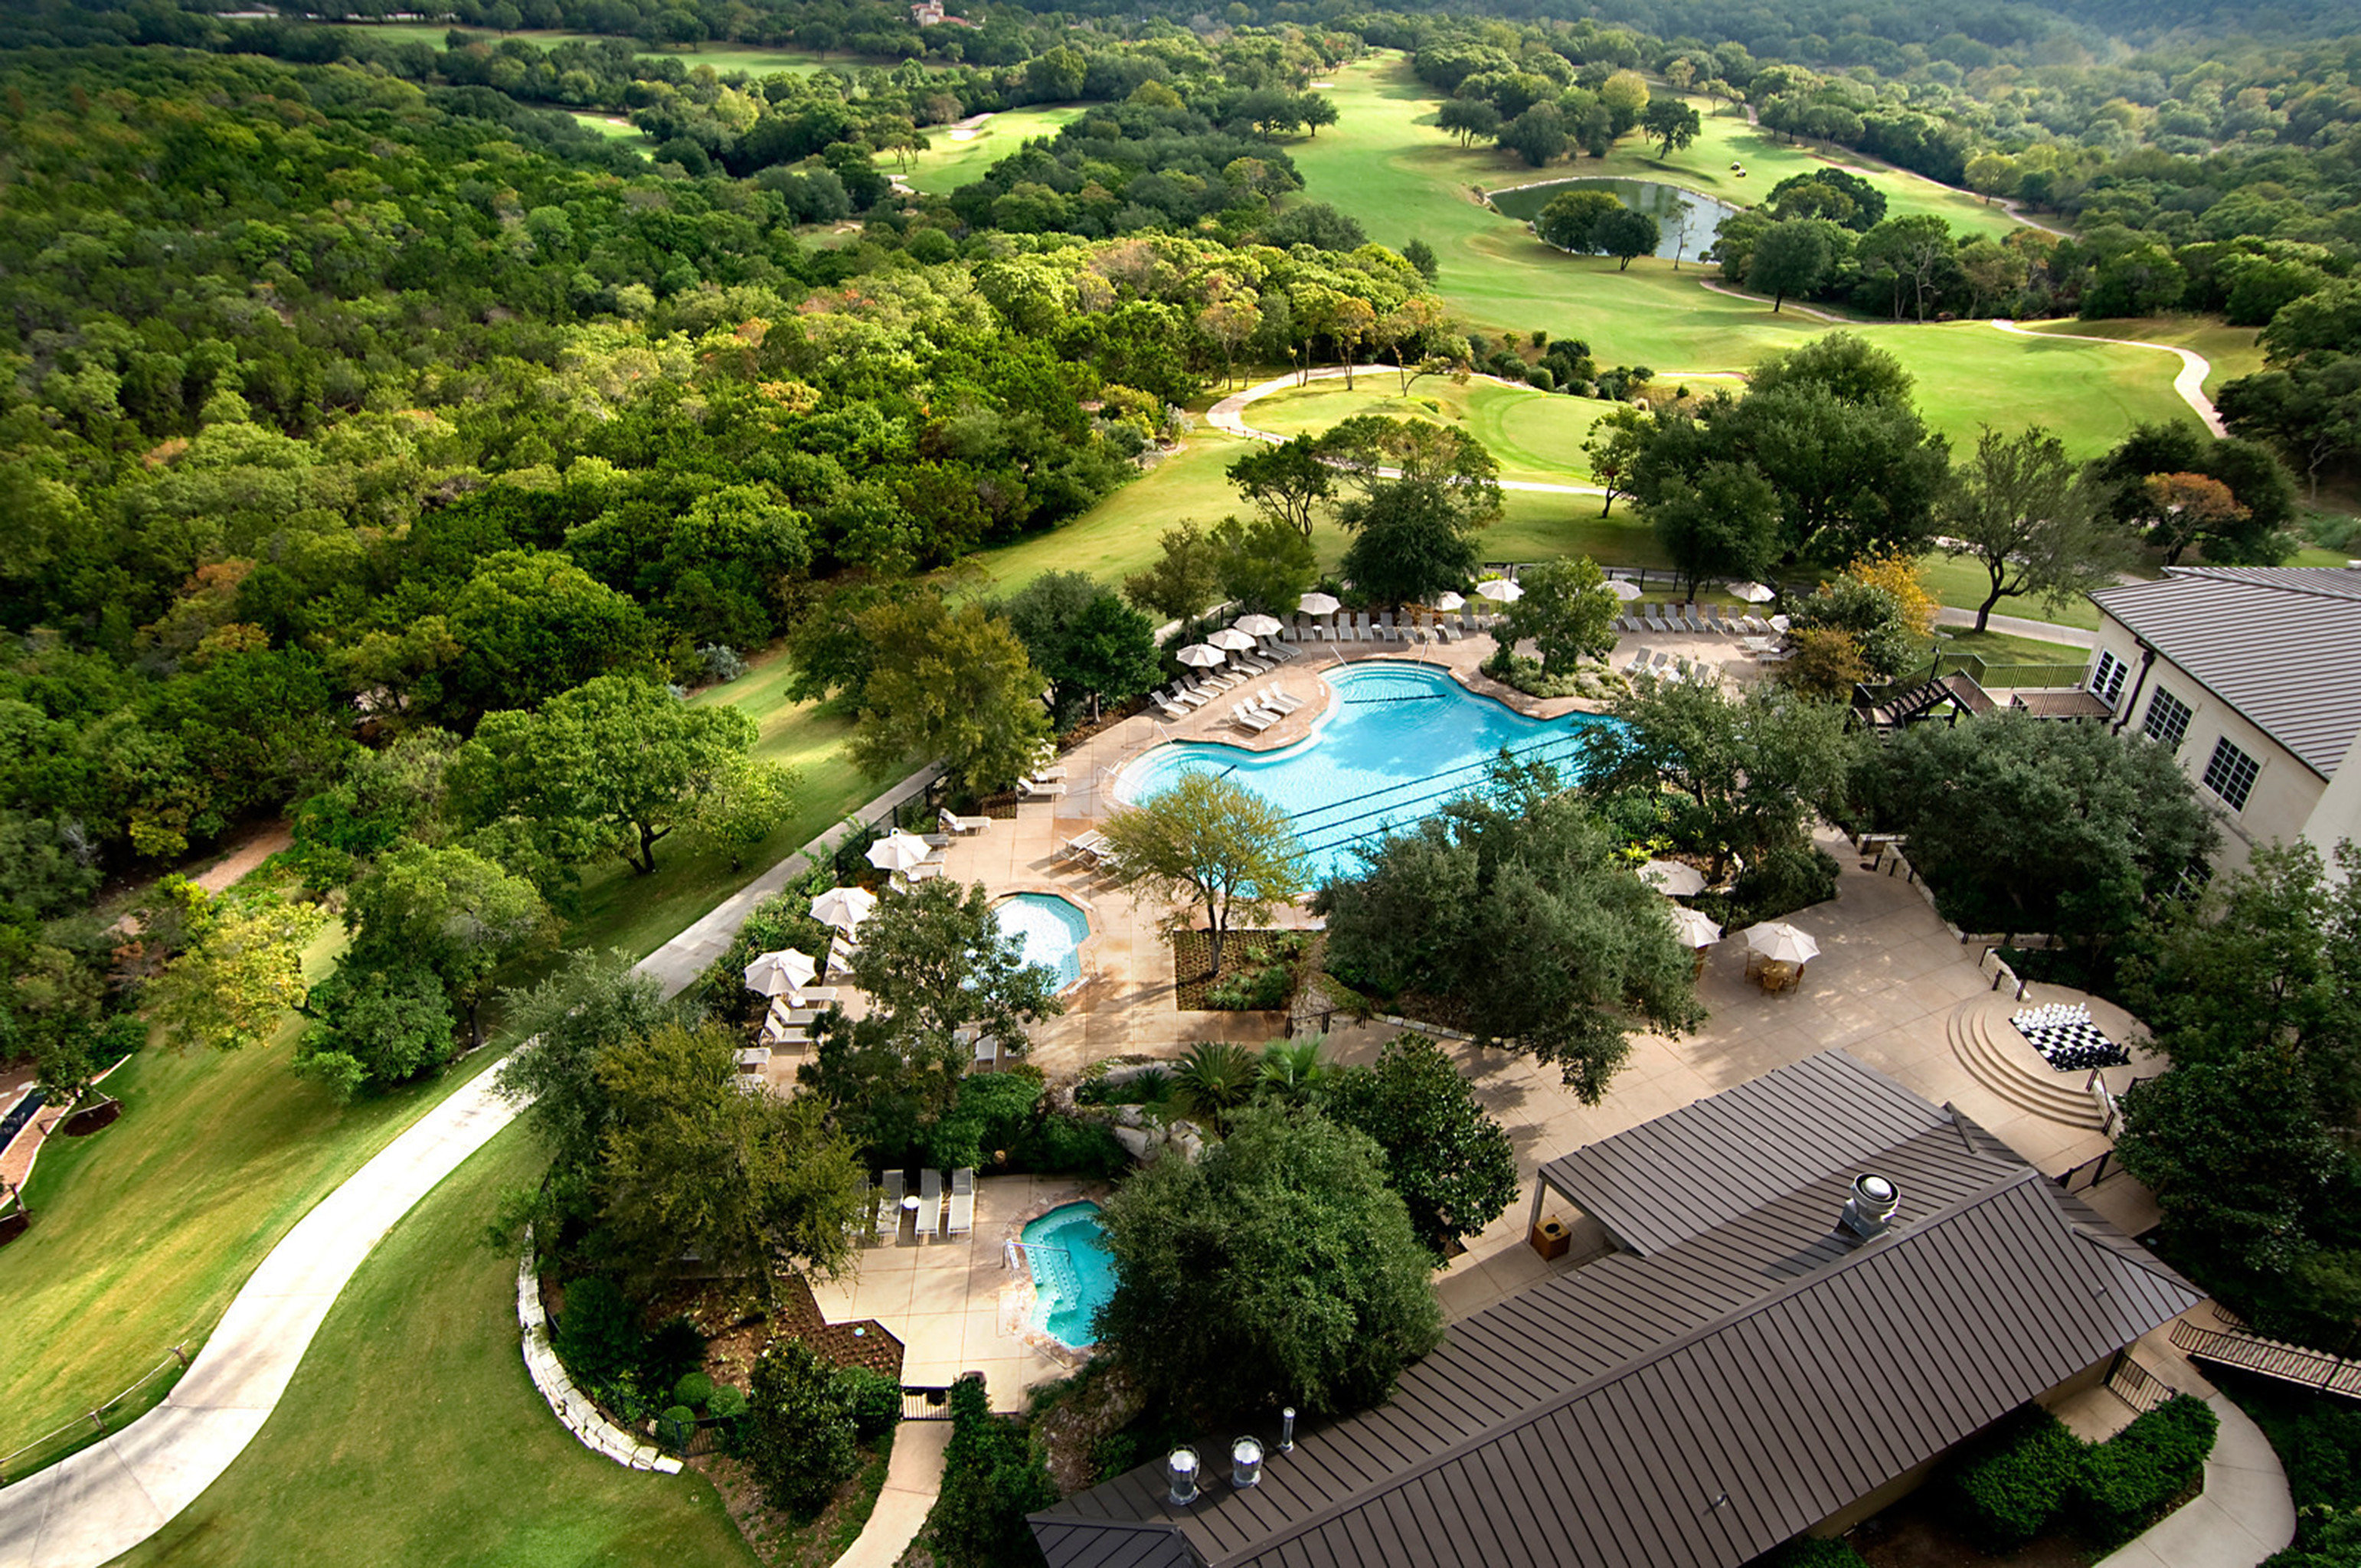 Garden Golf Grounds Lounge Luxury Outdoors Pool tree aerial photography bird's eye view Nature residential area Resort park mansion highland